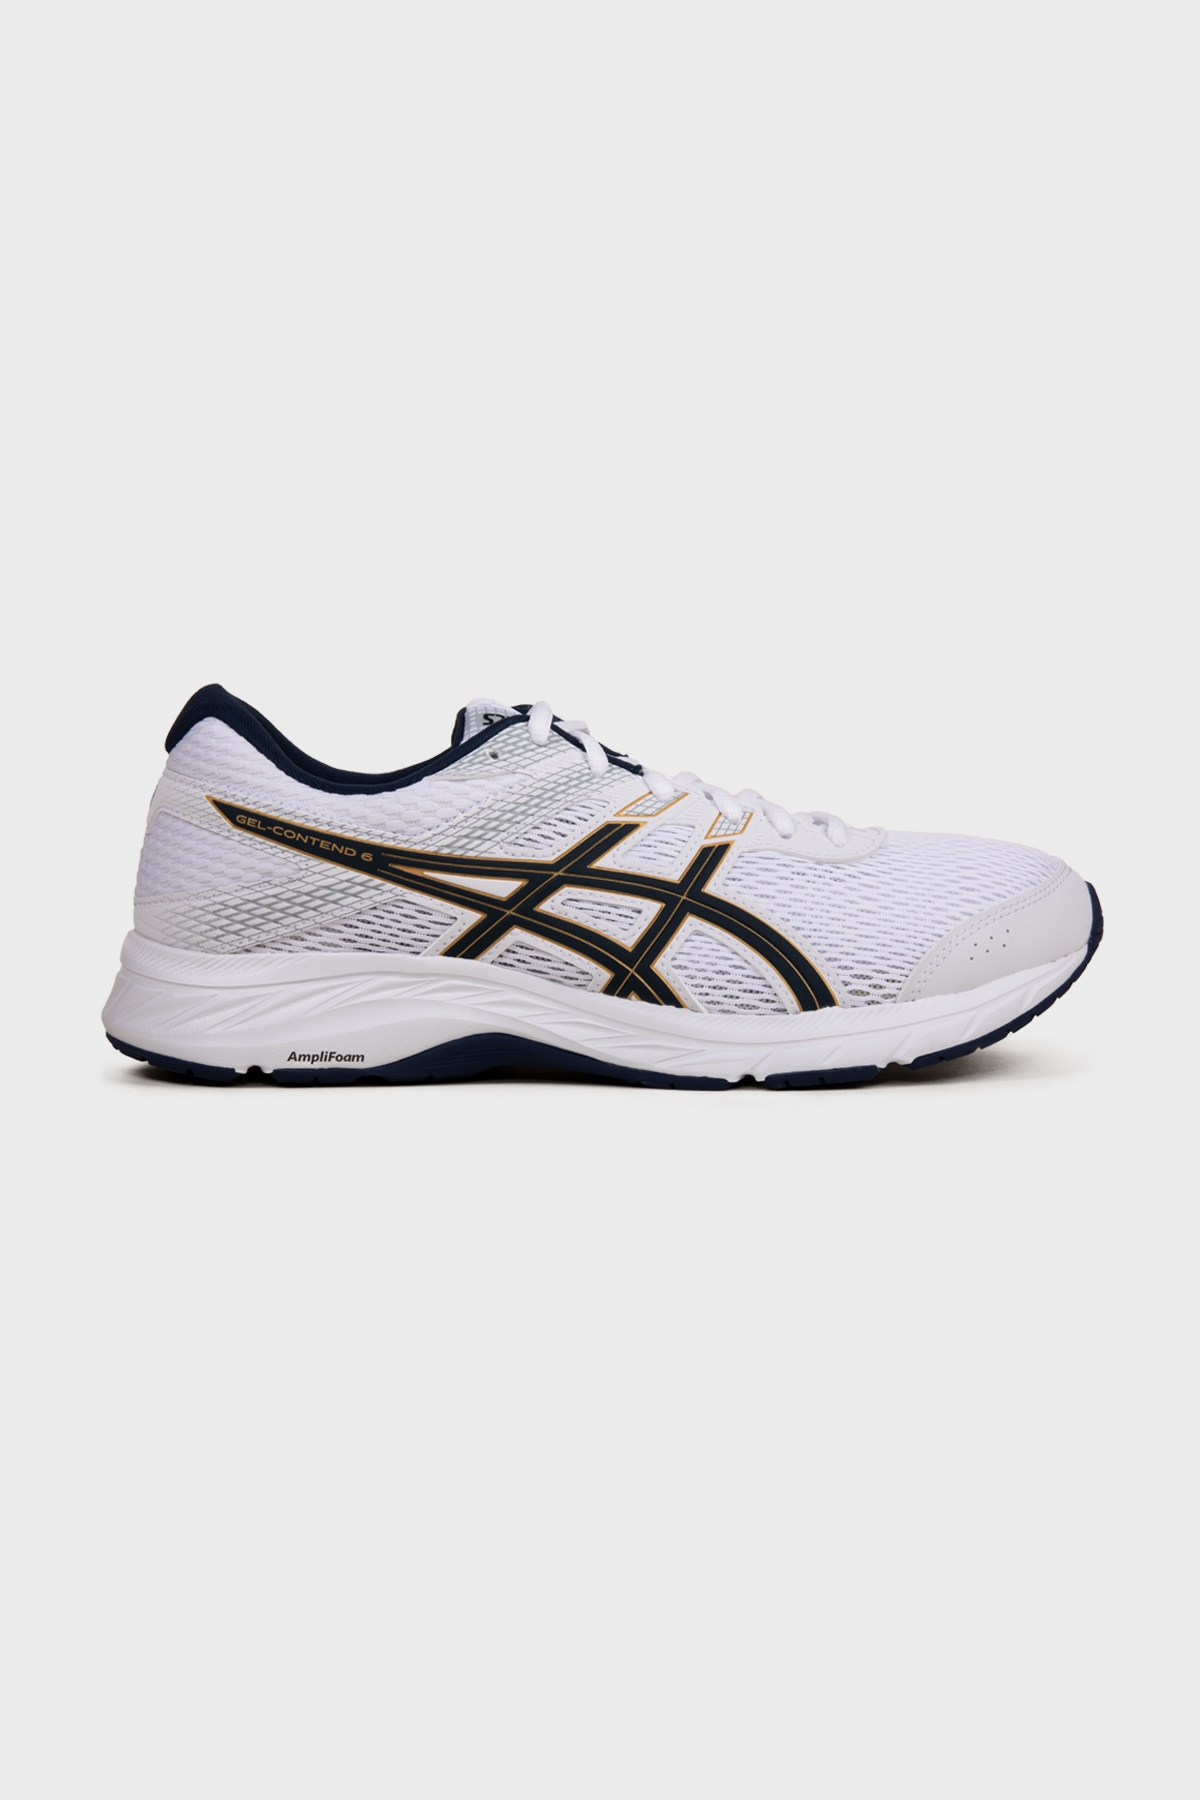 Asics - Gel Contend 6 - White Peacoat